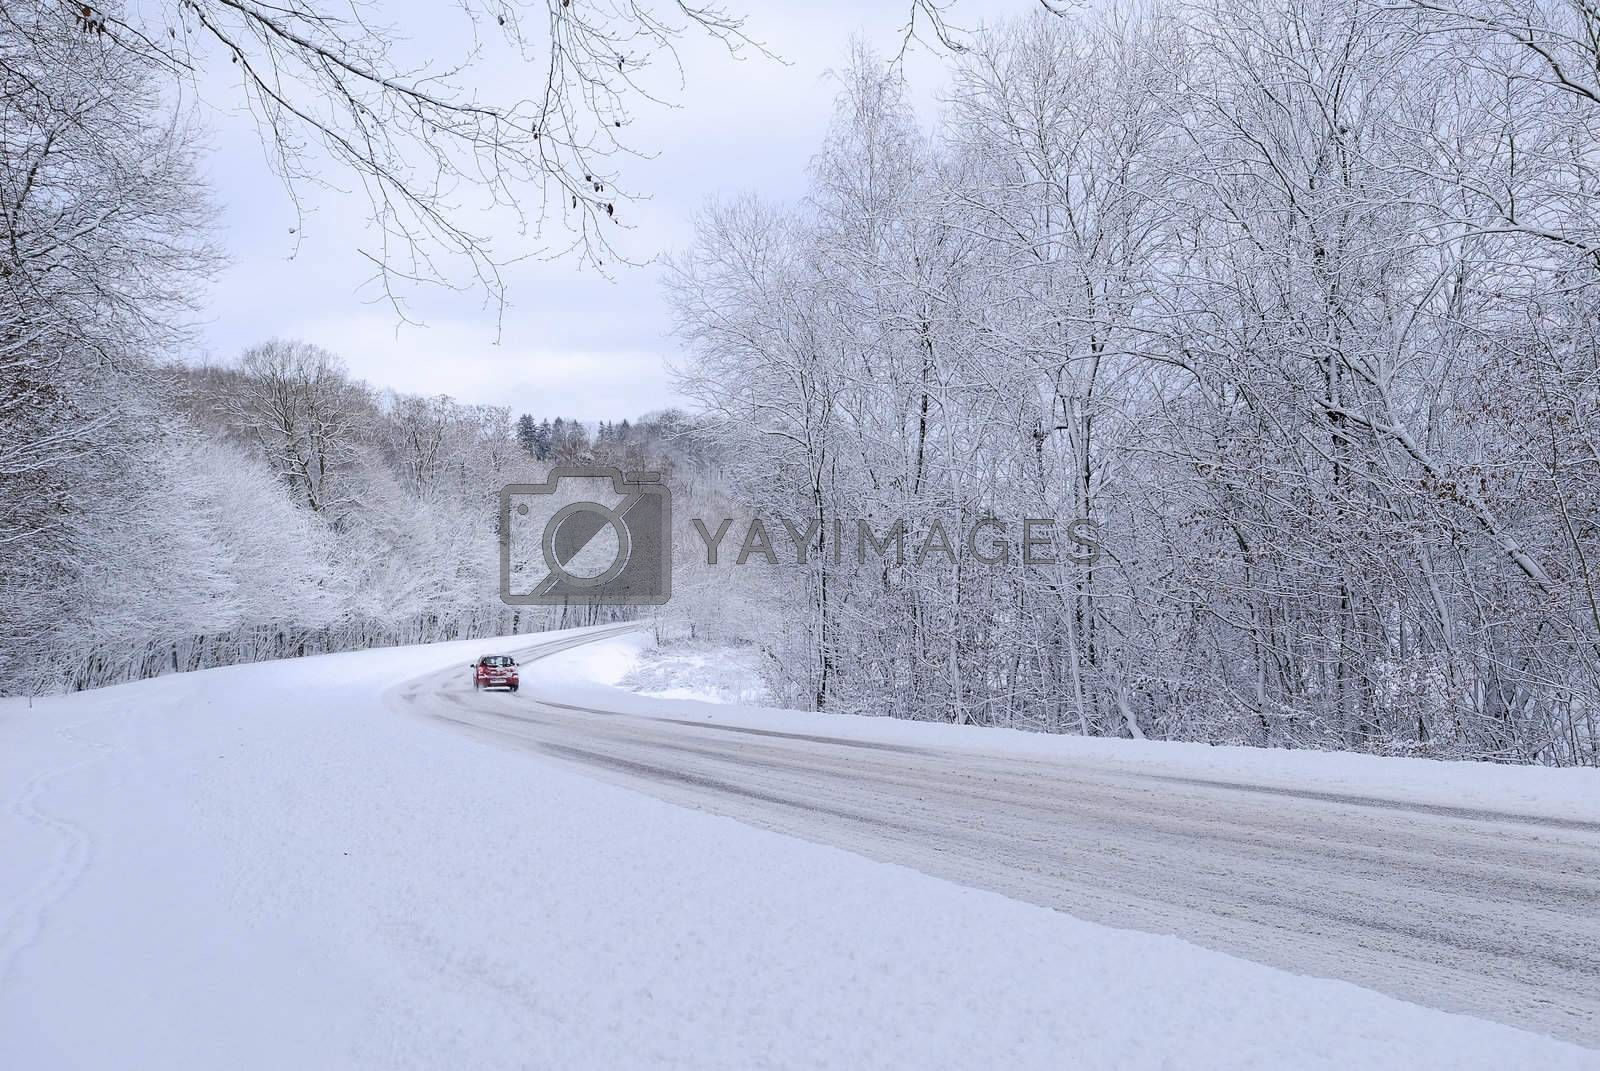 a red car on a snowy road